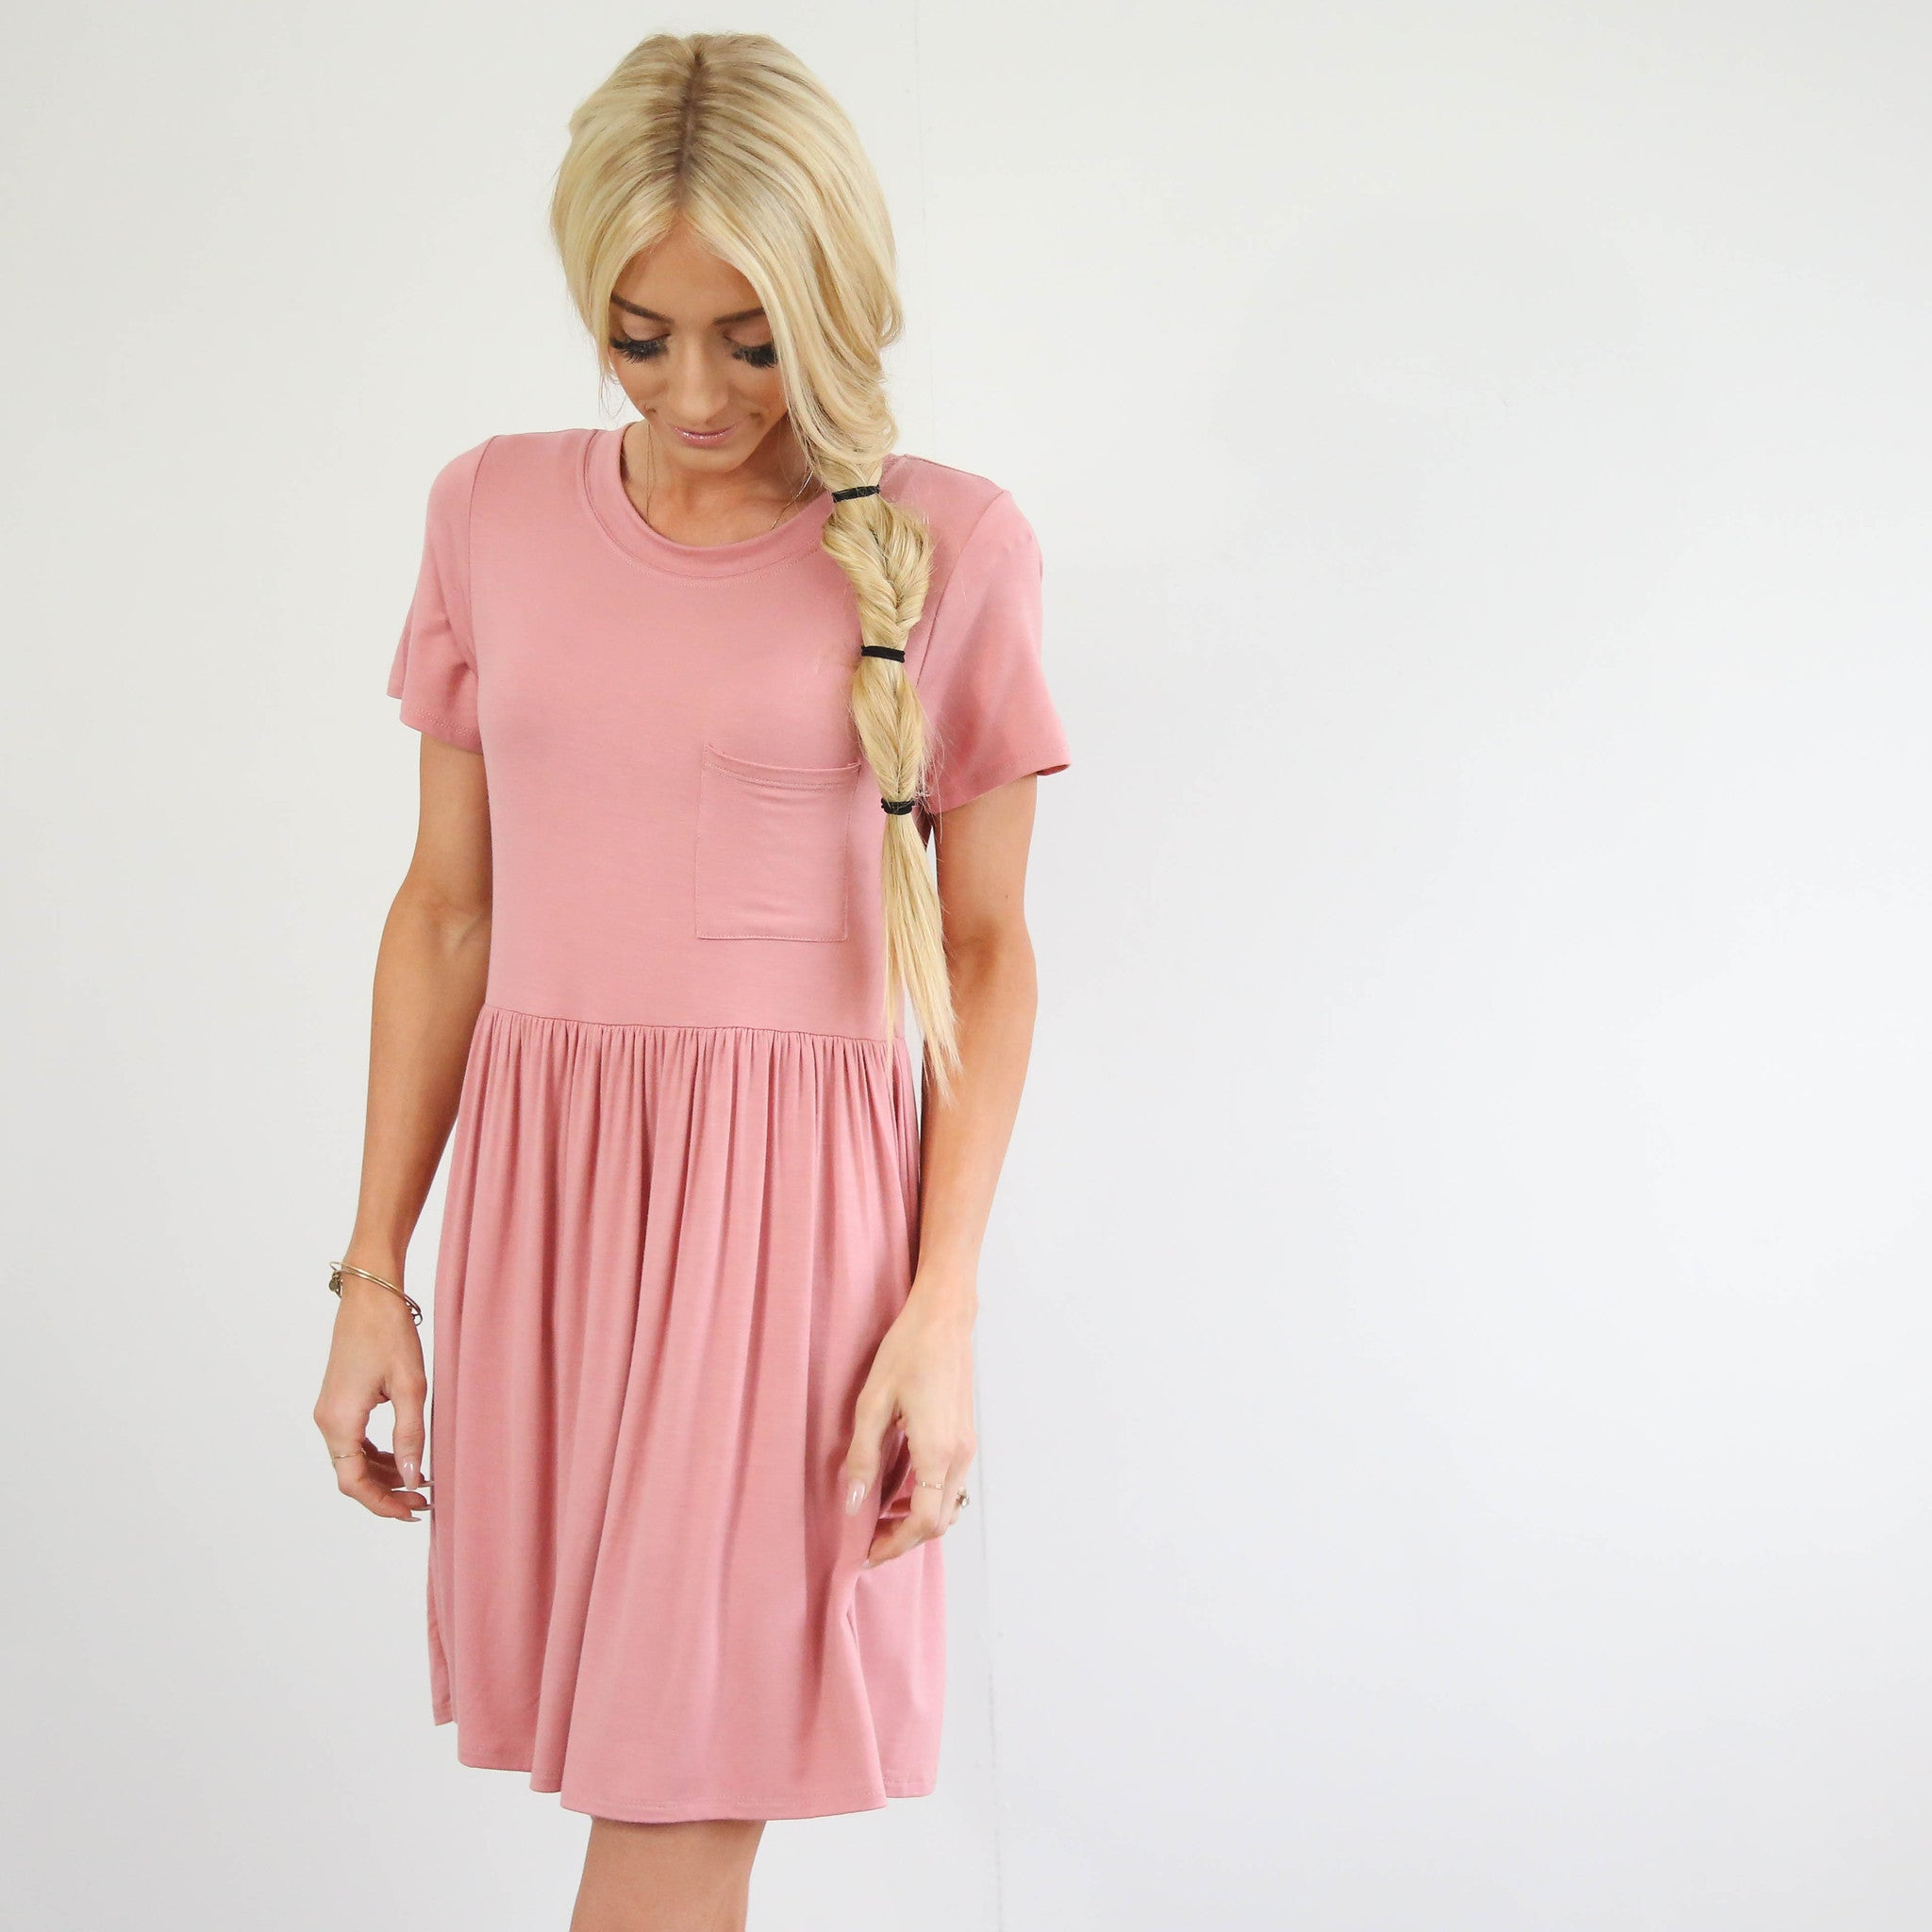 S & Co. Daytrip Baby Doll Dress